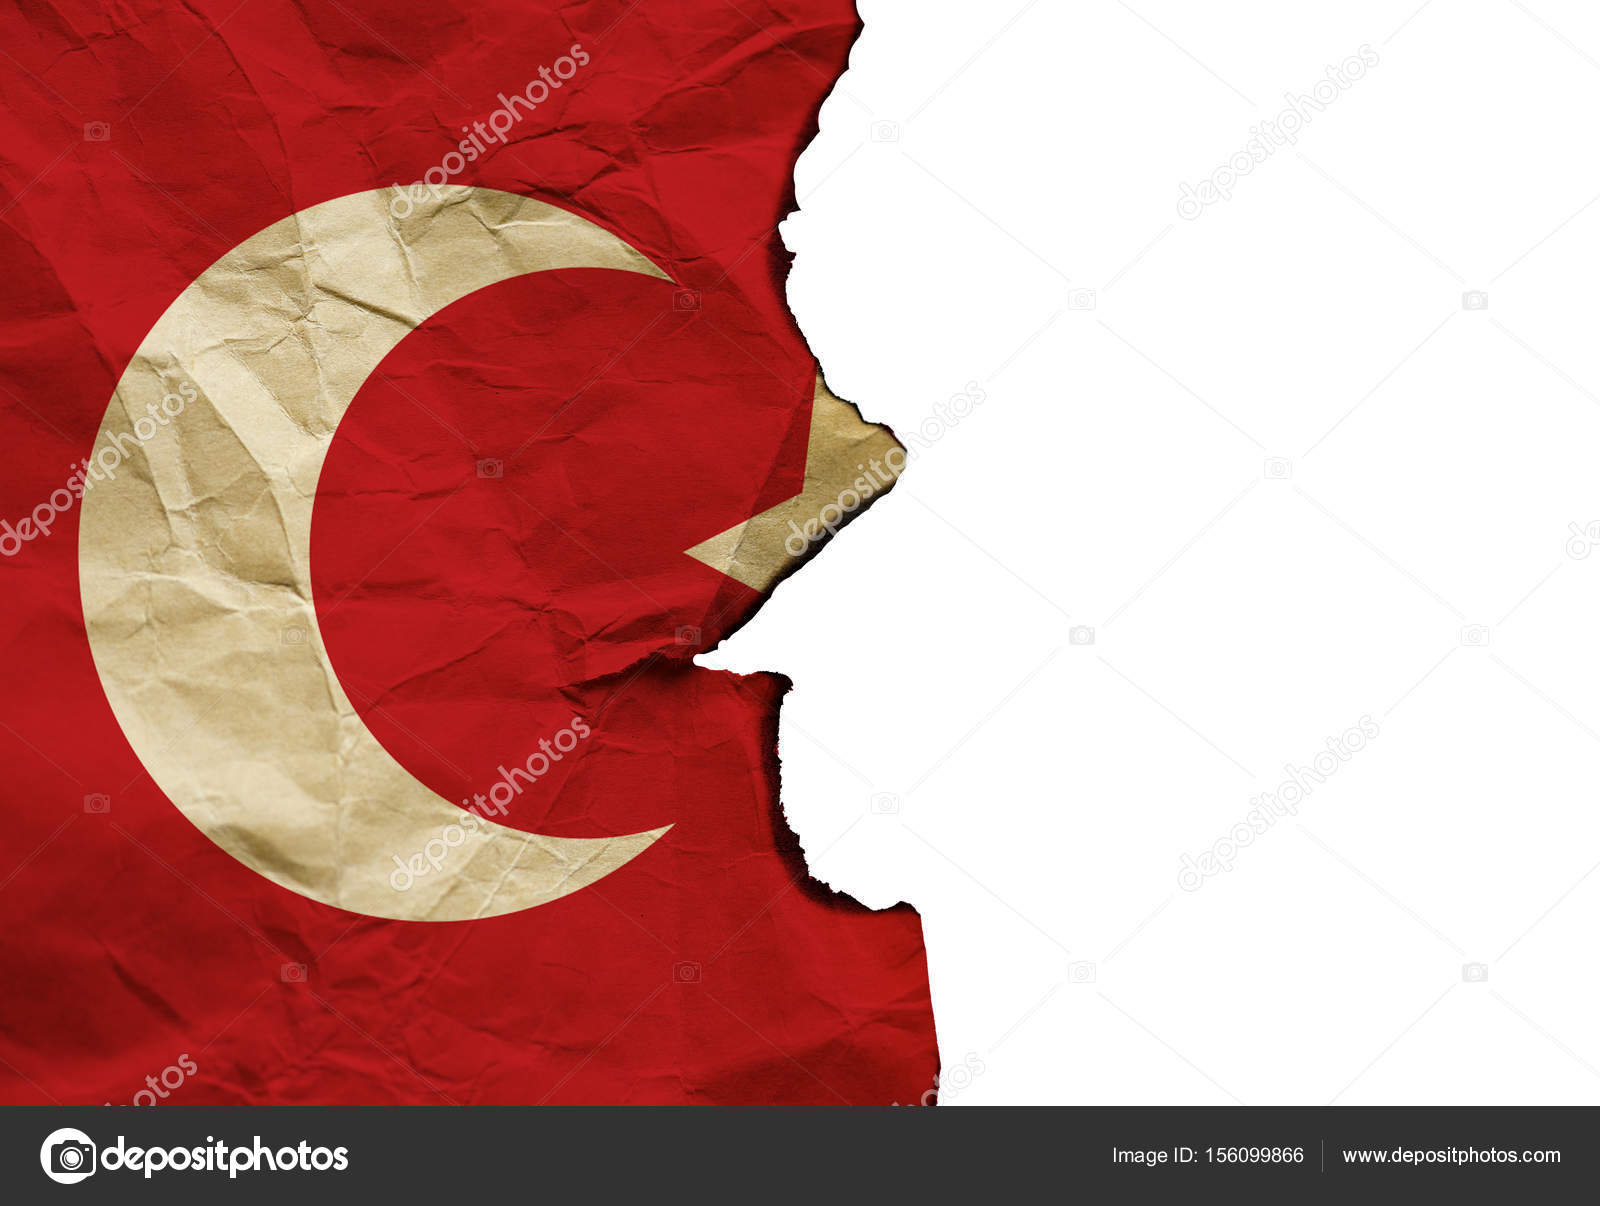 The Scorched Flag of Turkey on white background, concept